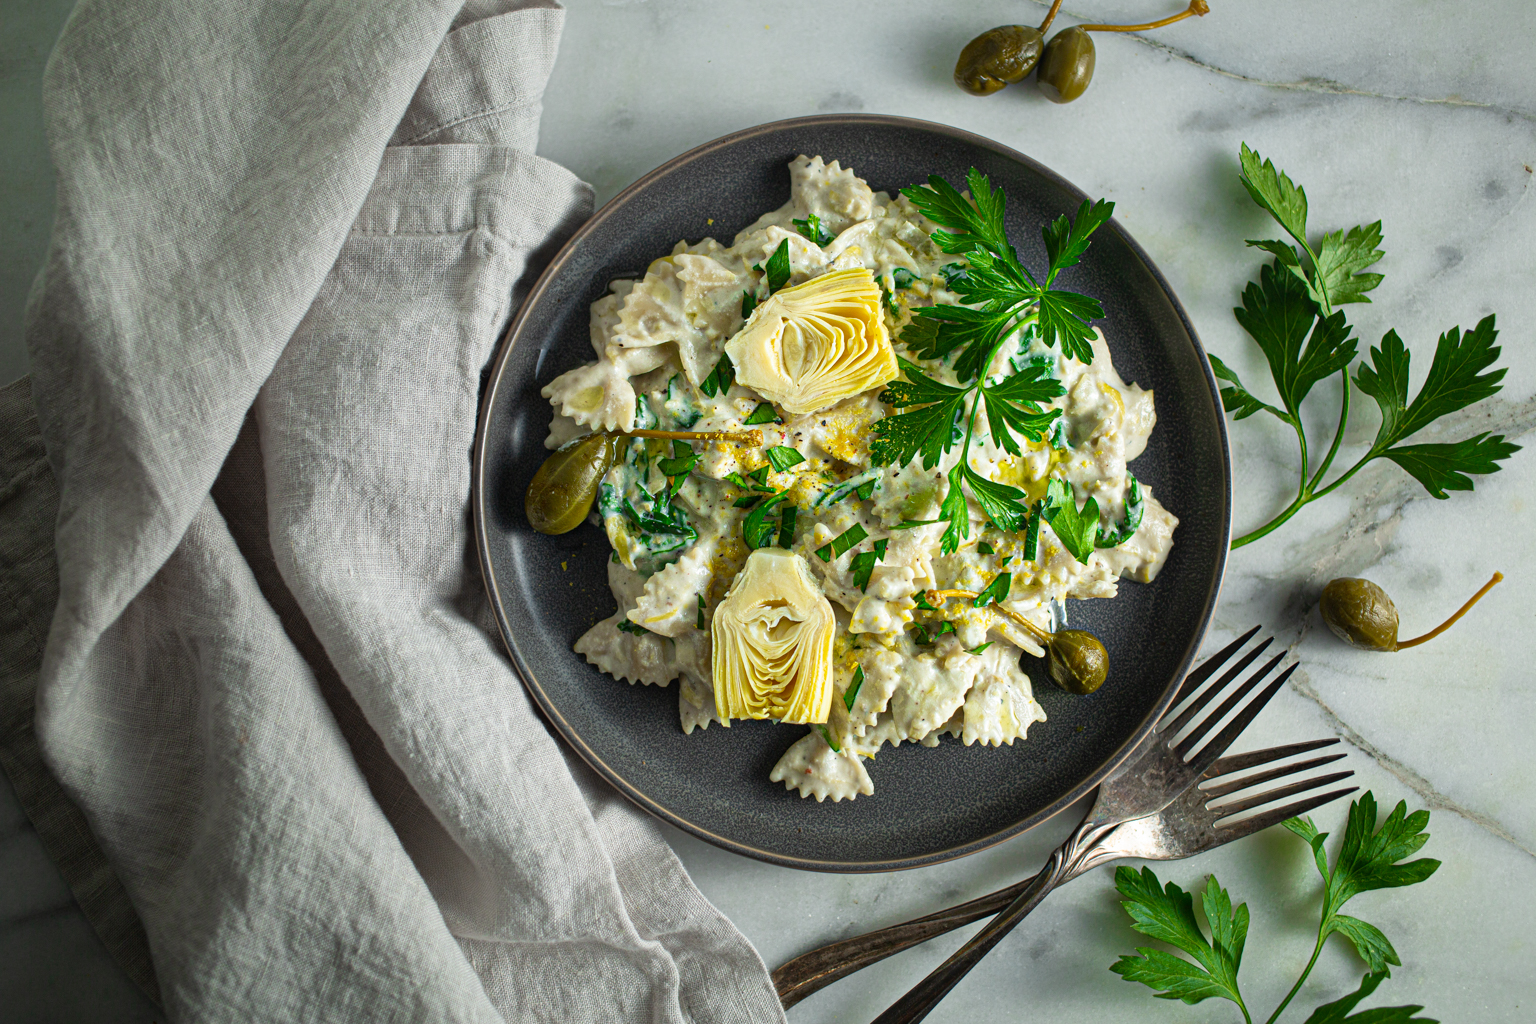 Vegan Artichoke and Garlic Pasta